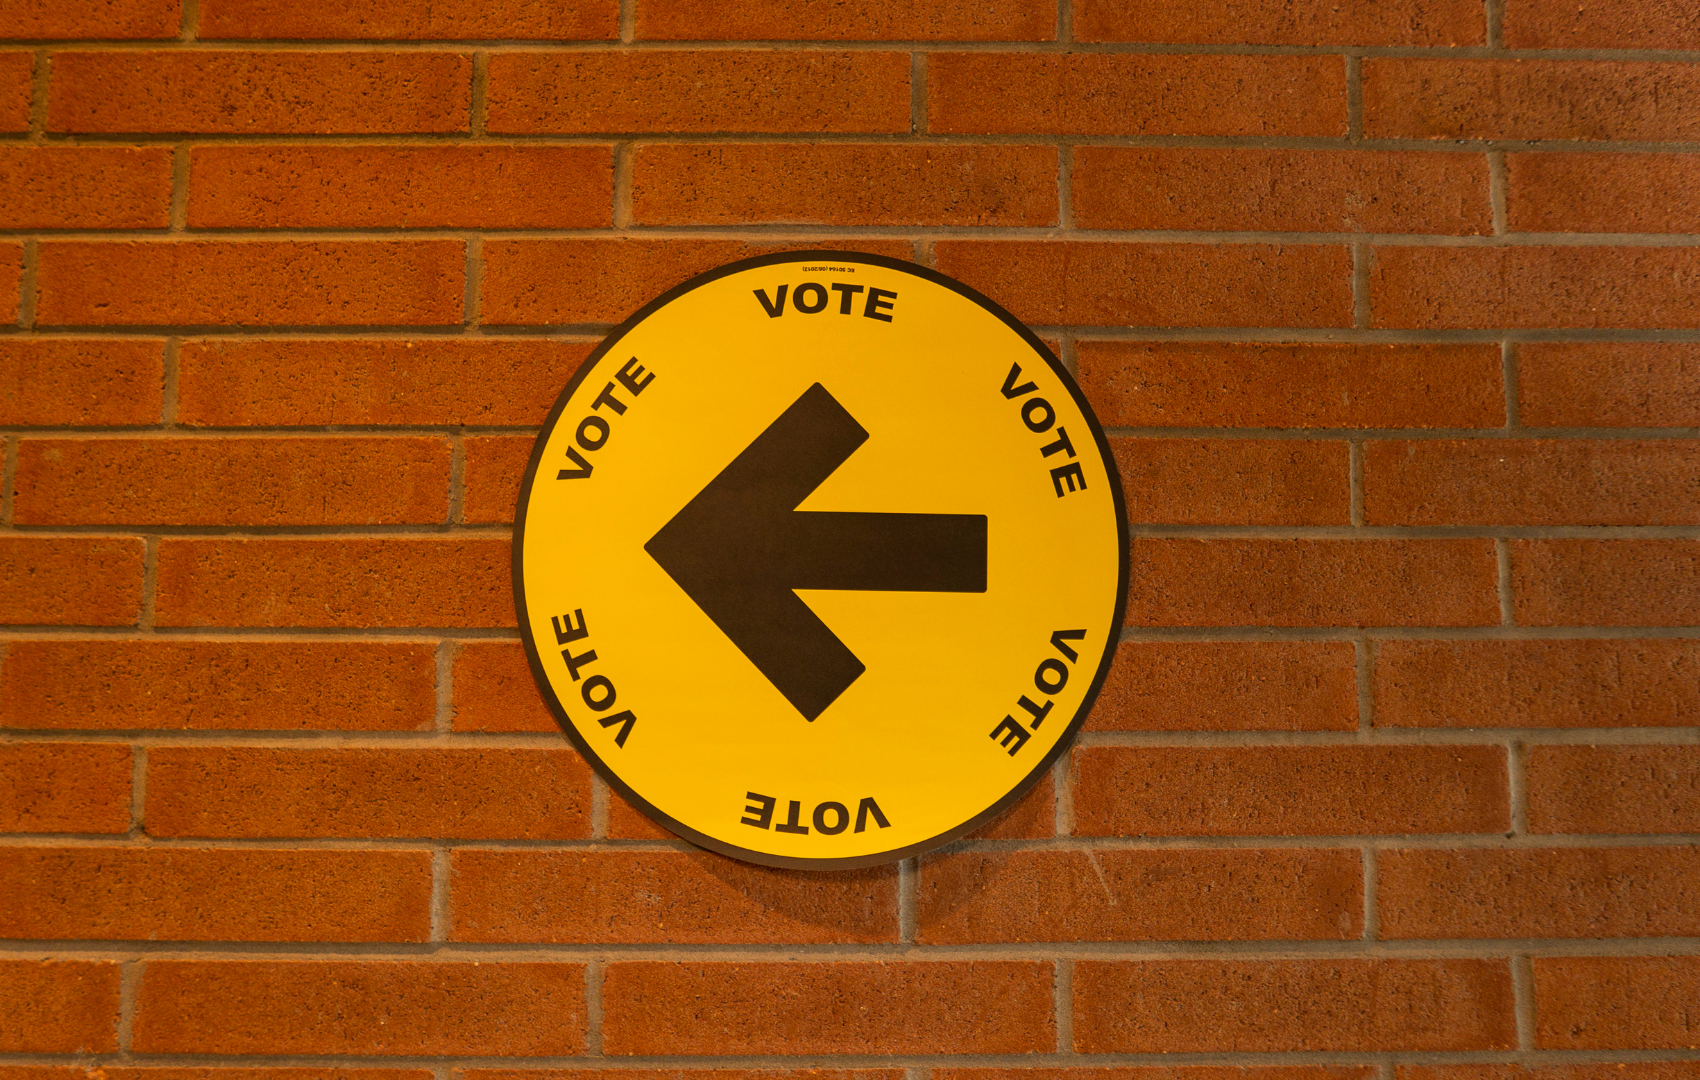 A brick wall with a vote sign in the centre including a left direction arrow. in the centre of the vote sign.